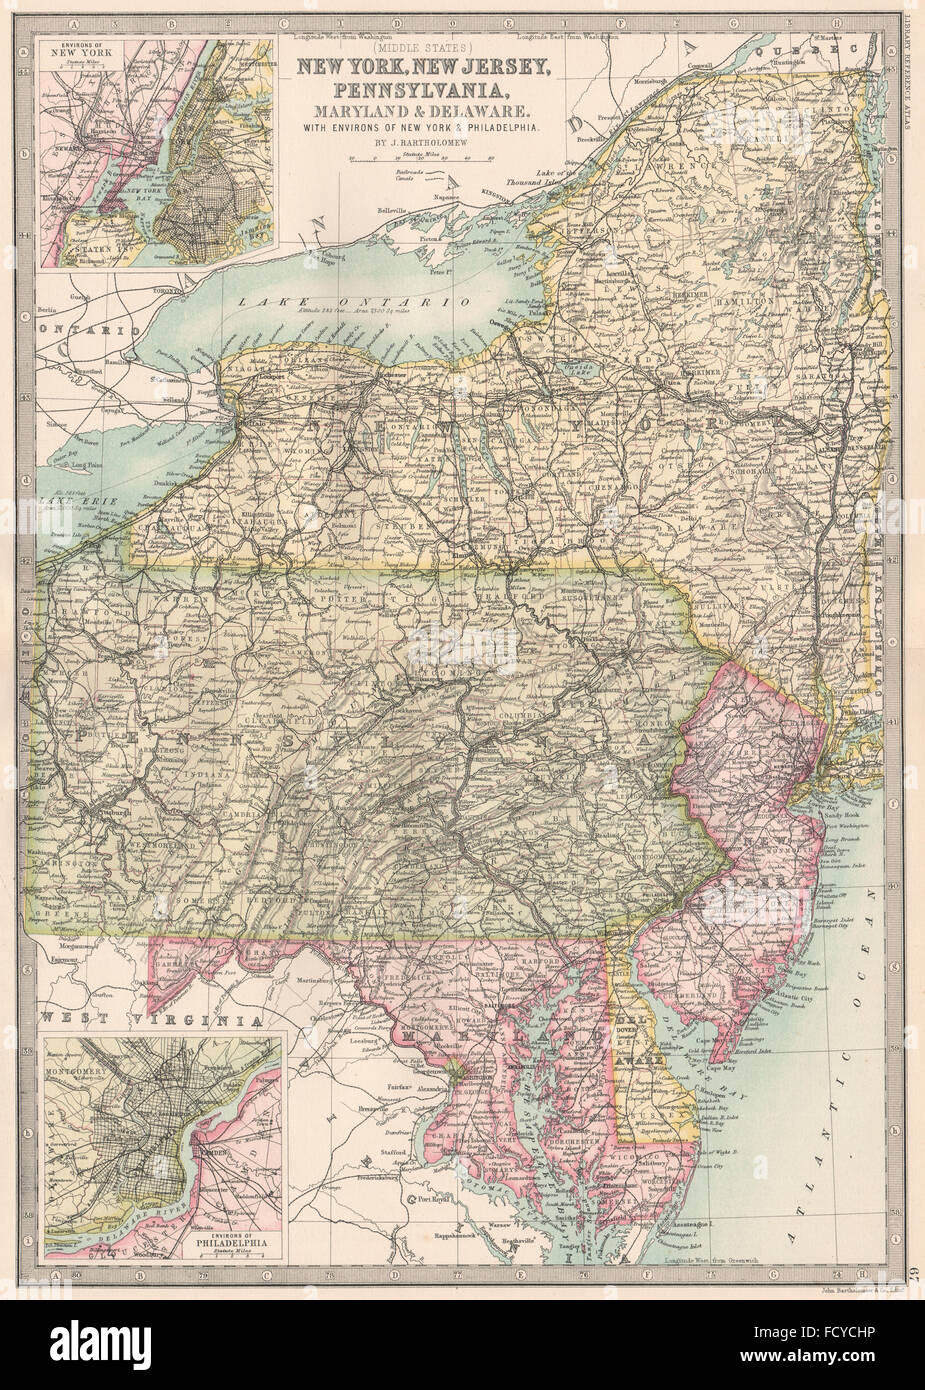 Map Of New York Pennsylvania And New Jersey.Mid Atlantic States New York New Jersey Pennsylvania Maryland Stock